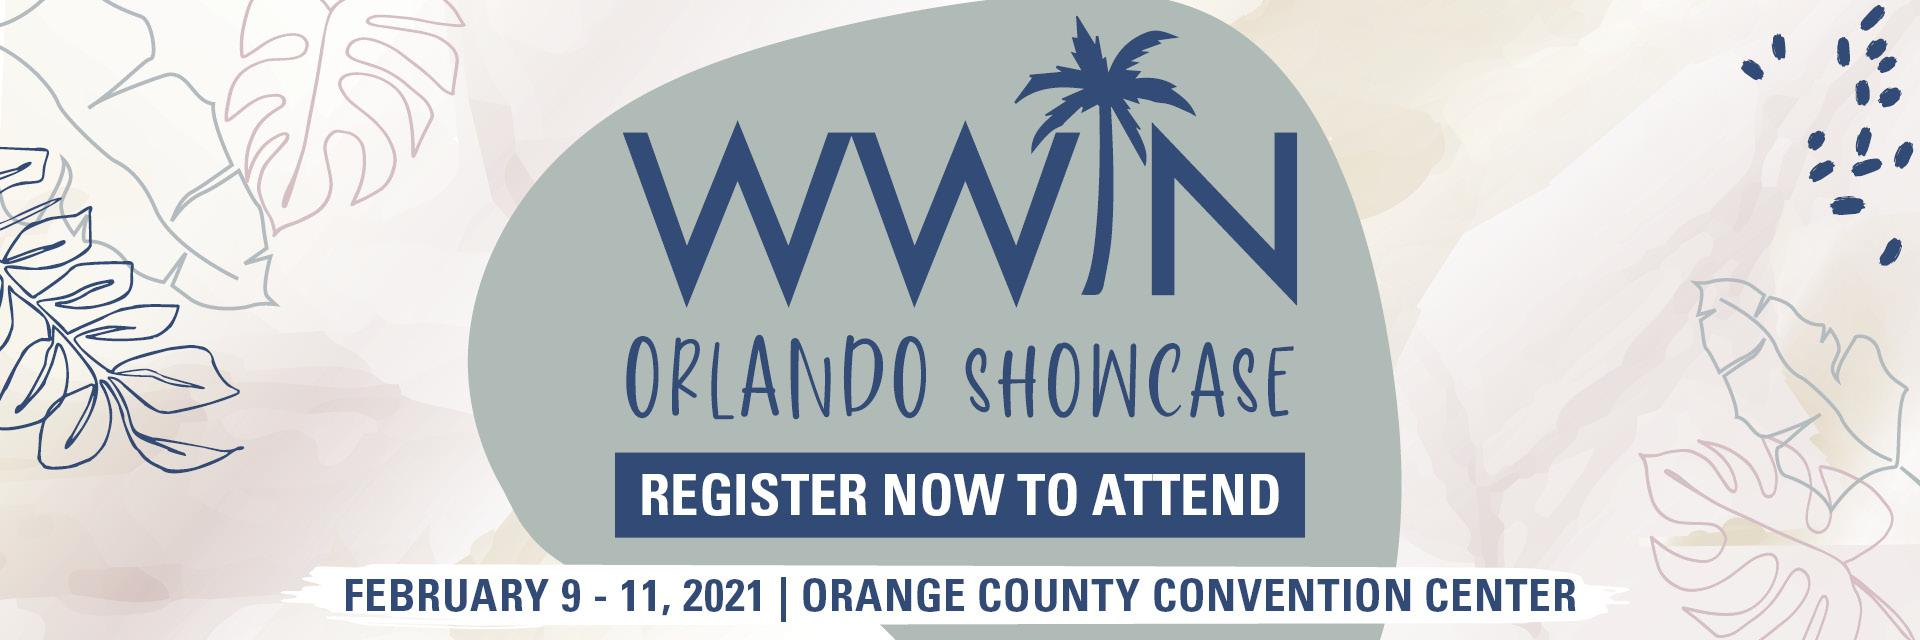 WWIN Orlando Showcase | Register Now